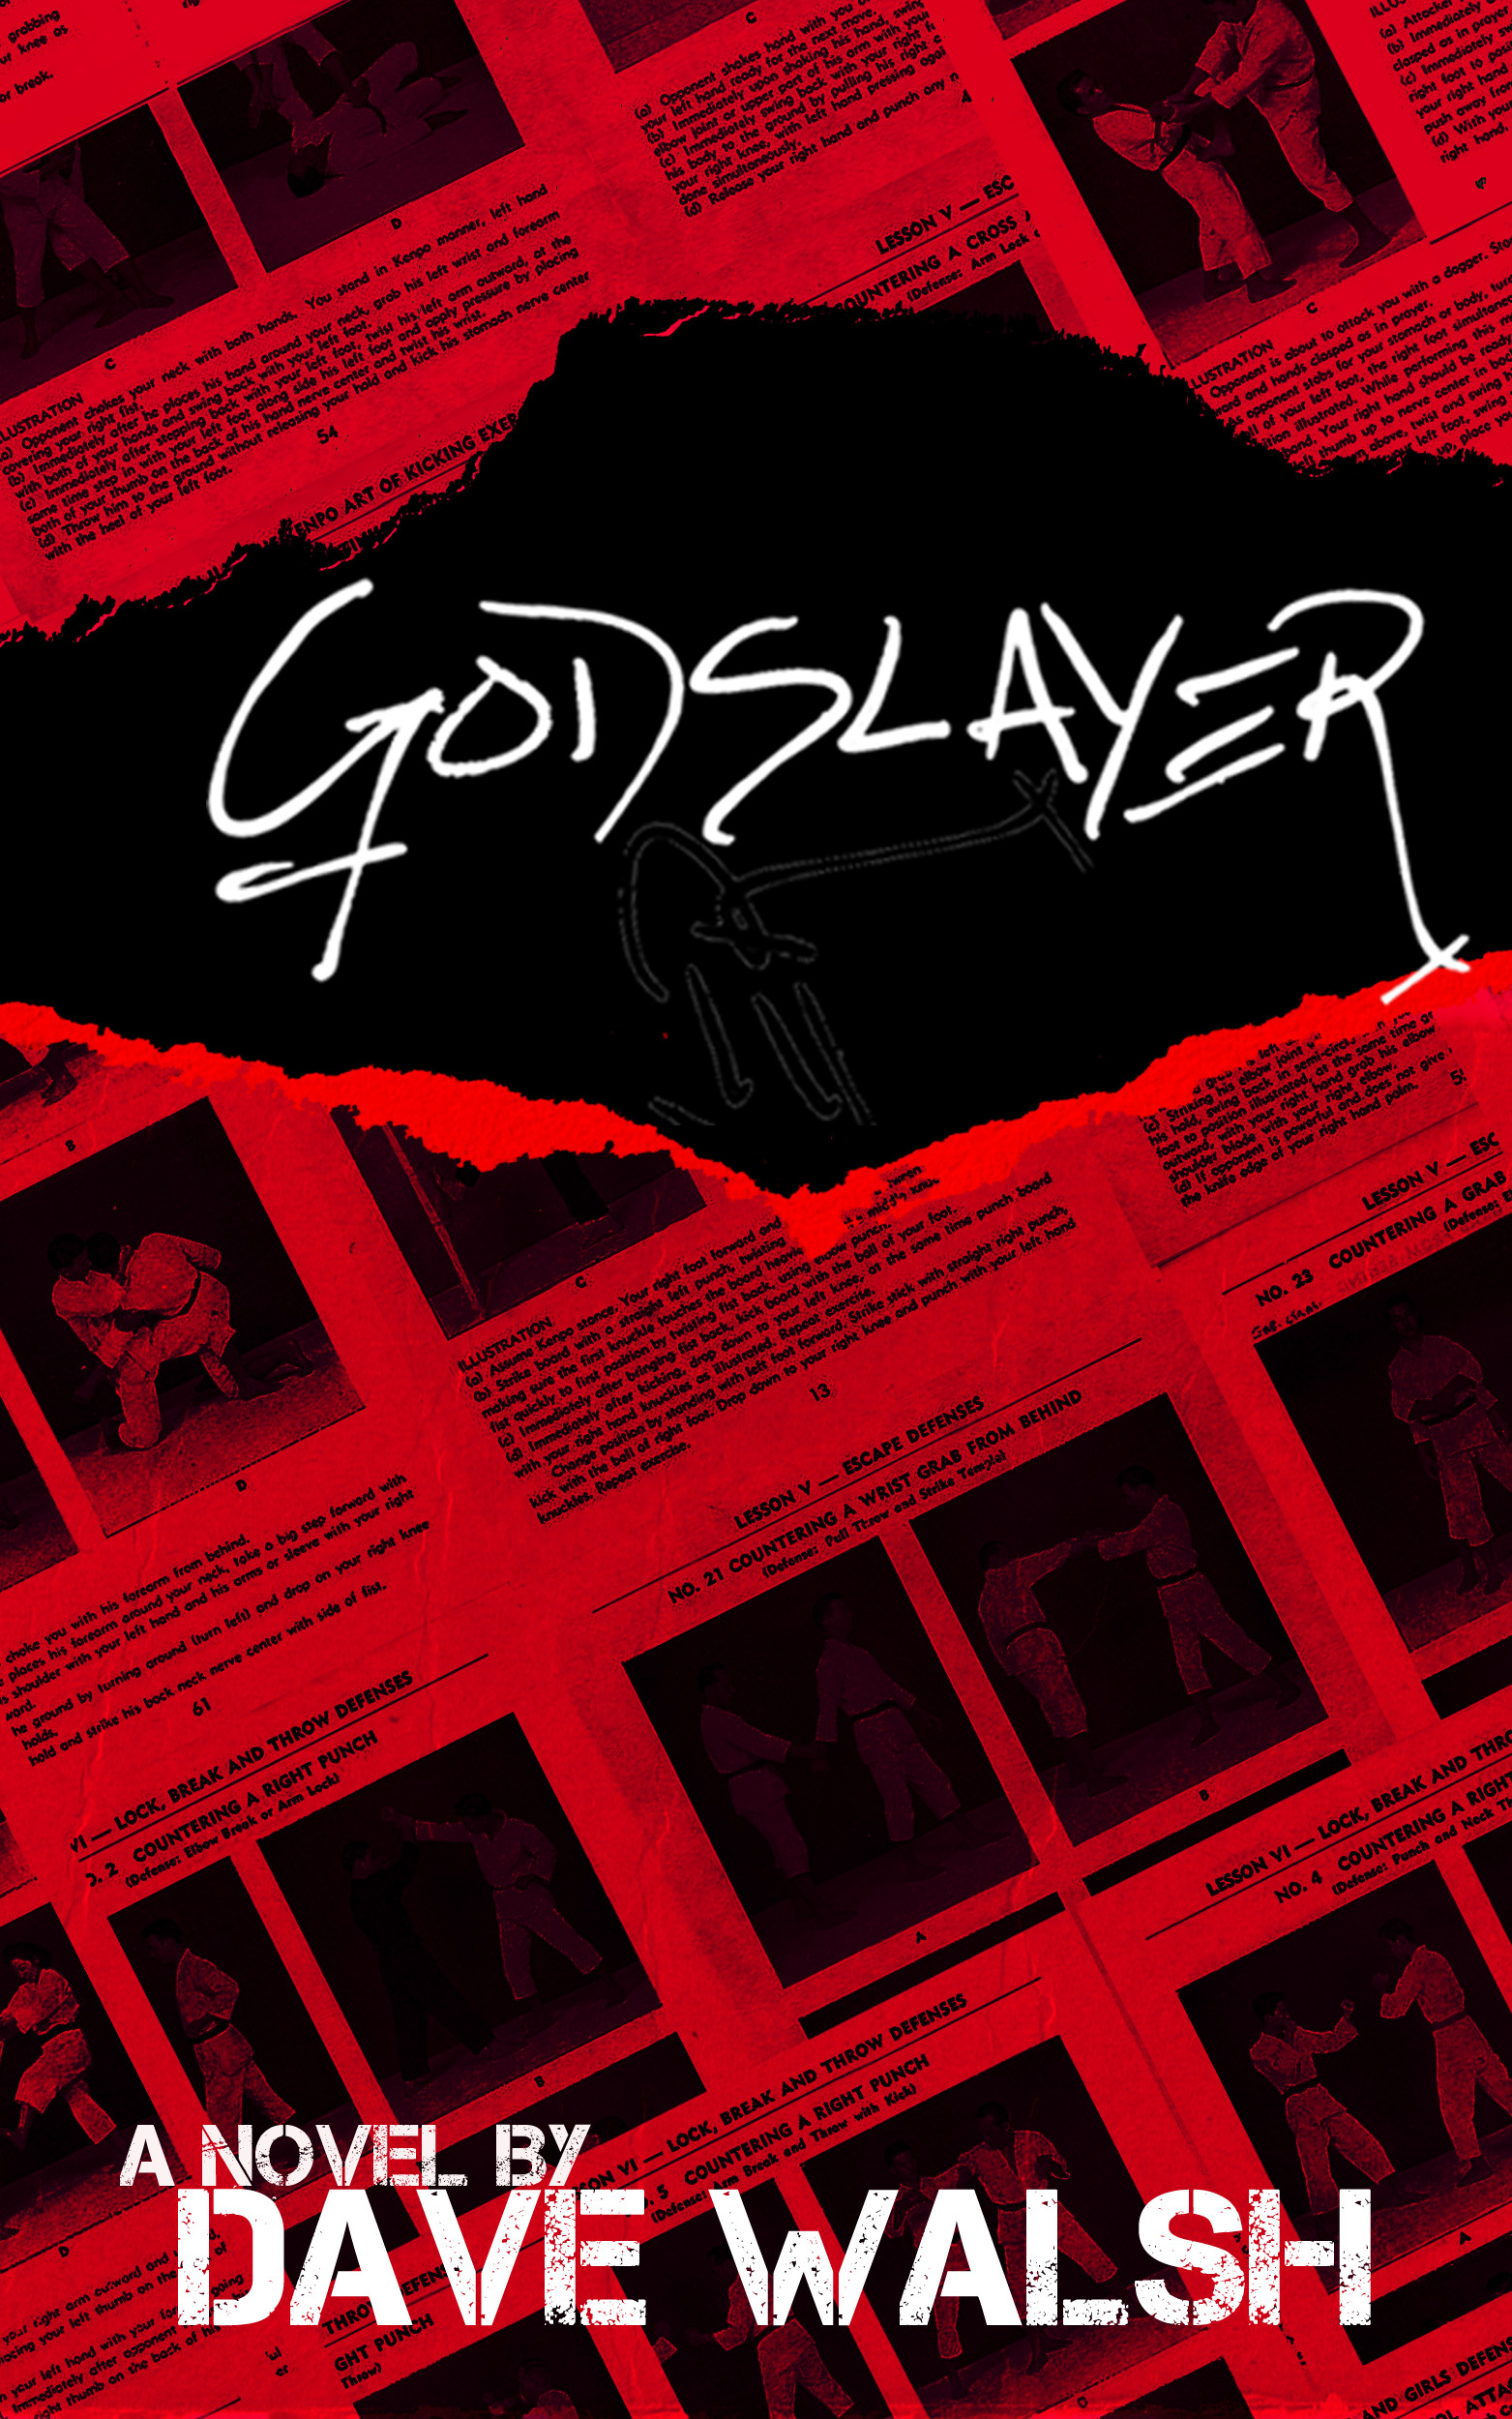 The Godslayer